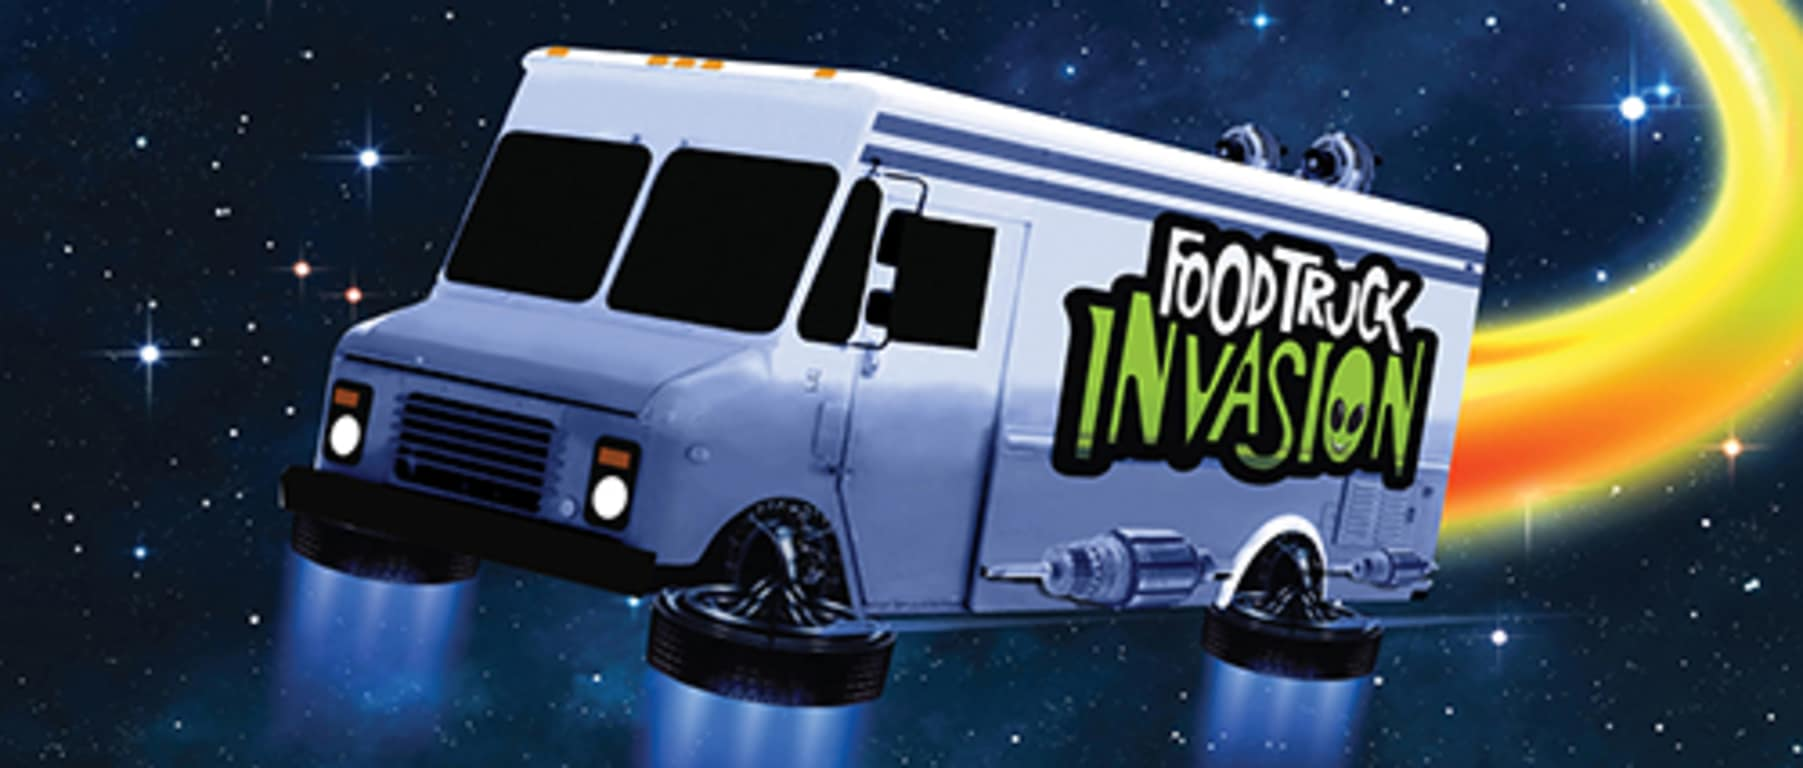 food truck invasions- september schedule - gabrielle bryce real estate